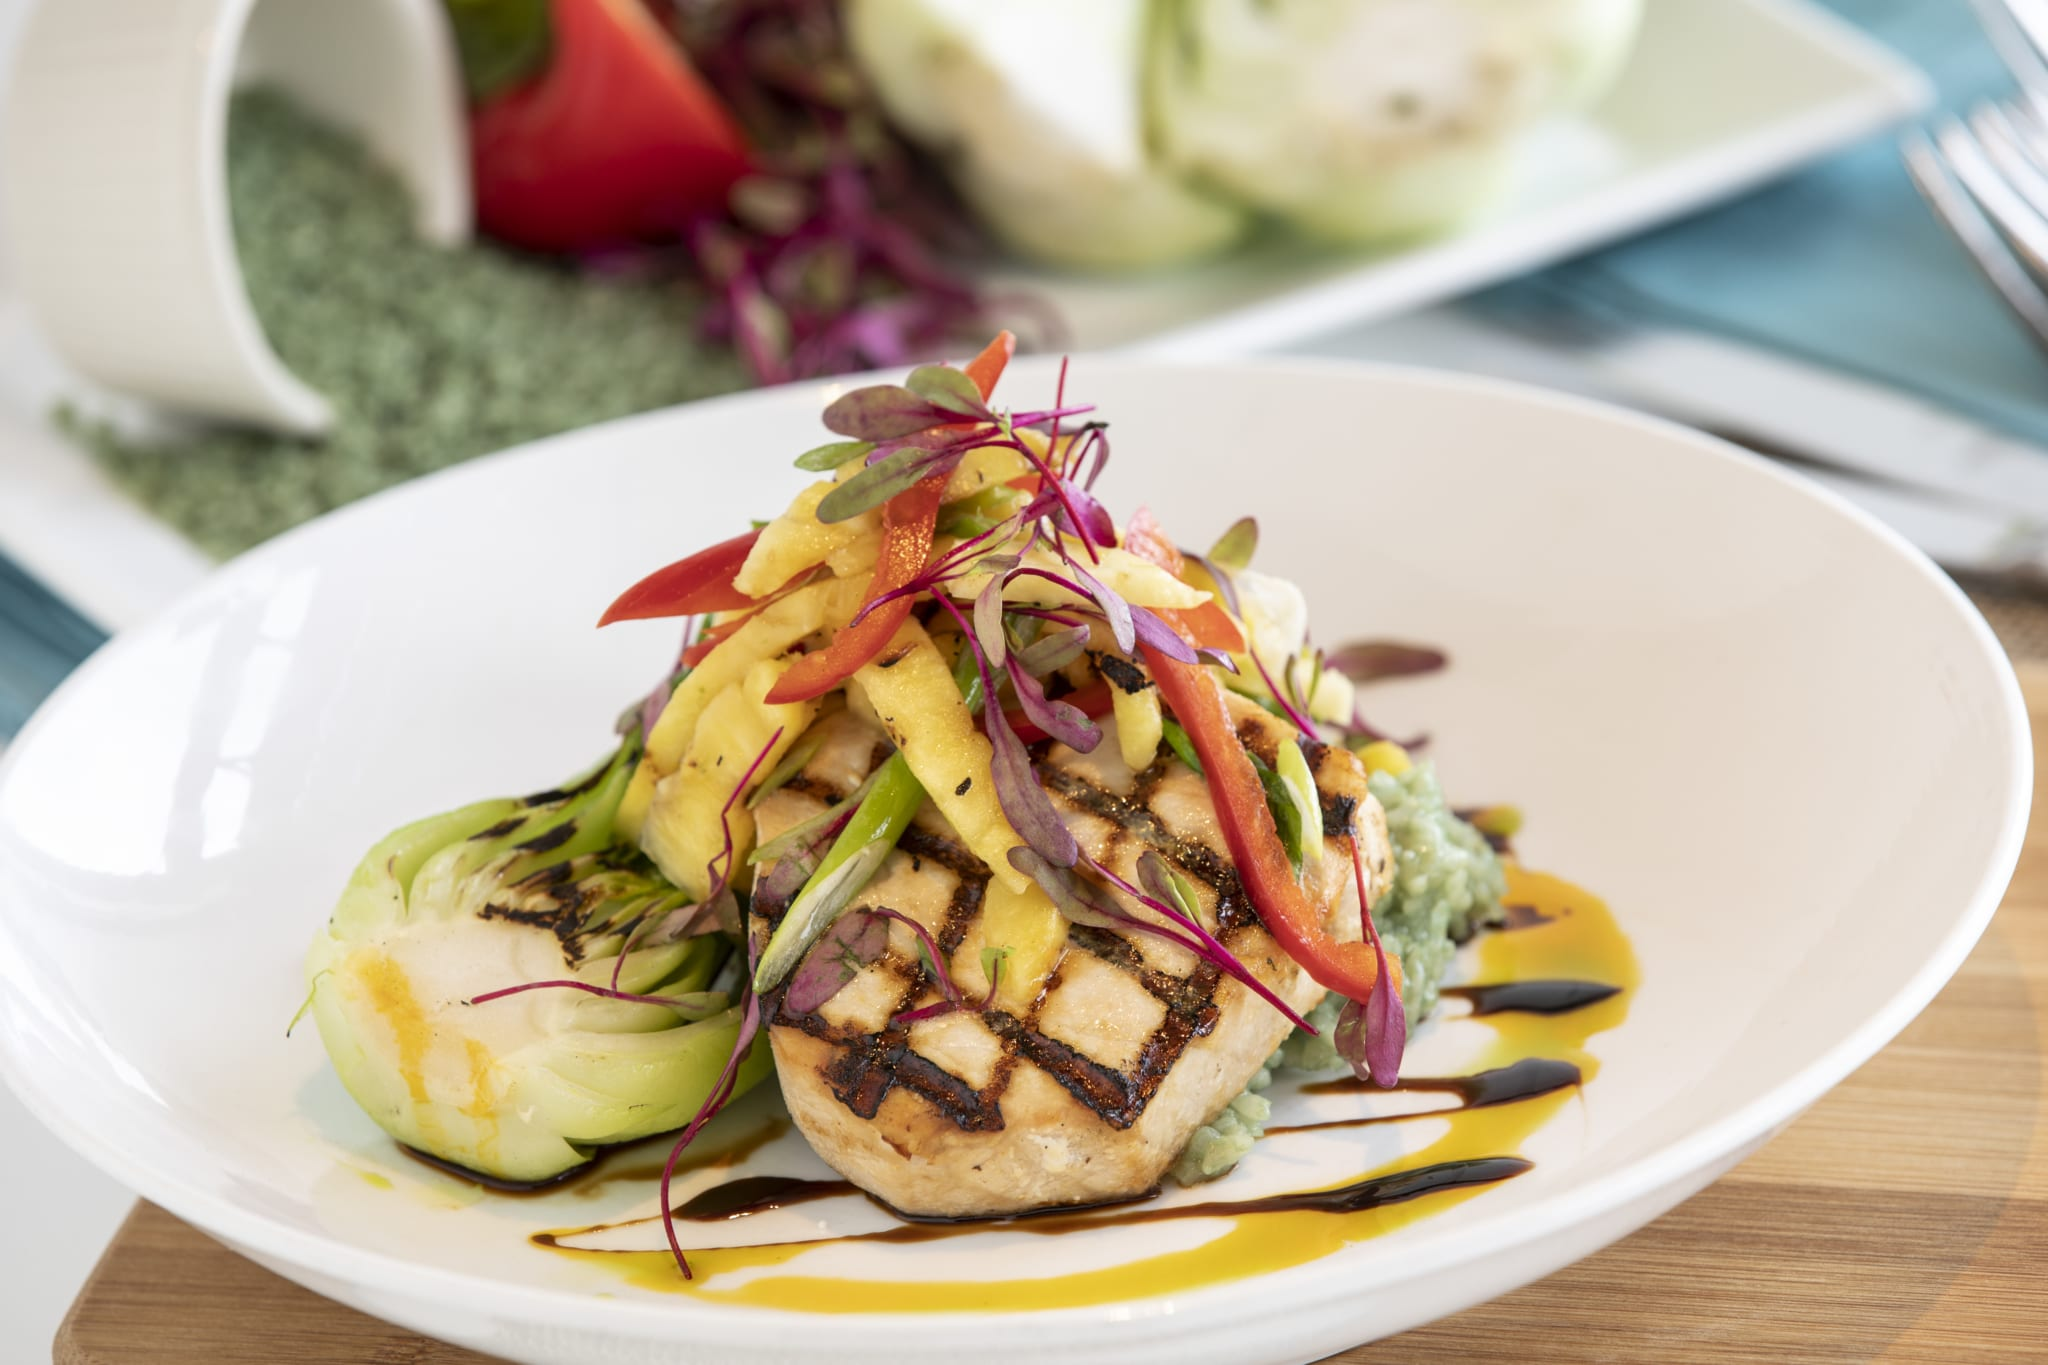 Grilled swordfish loin.